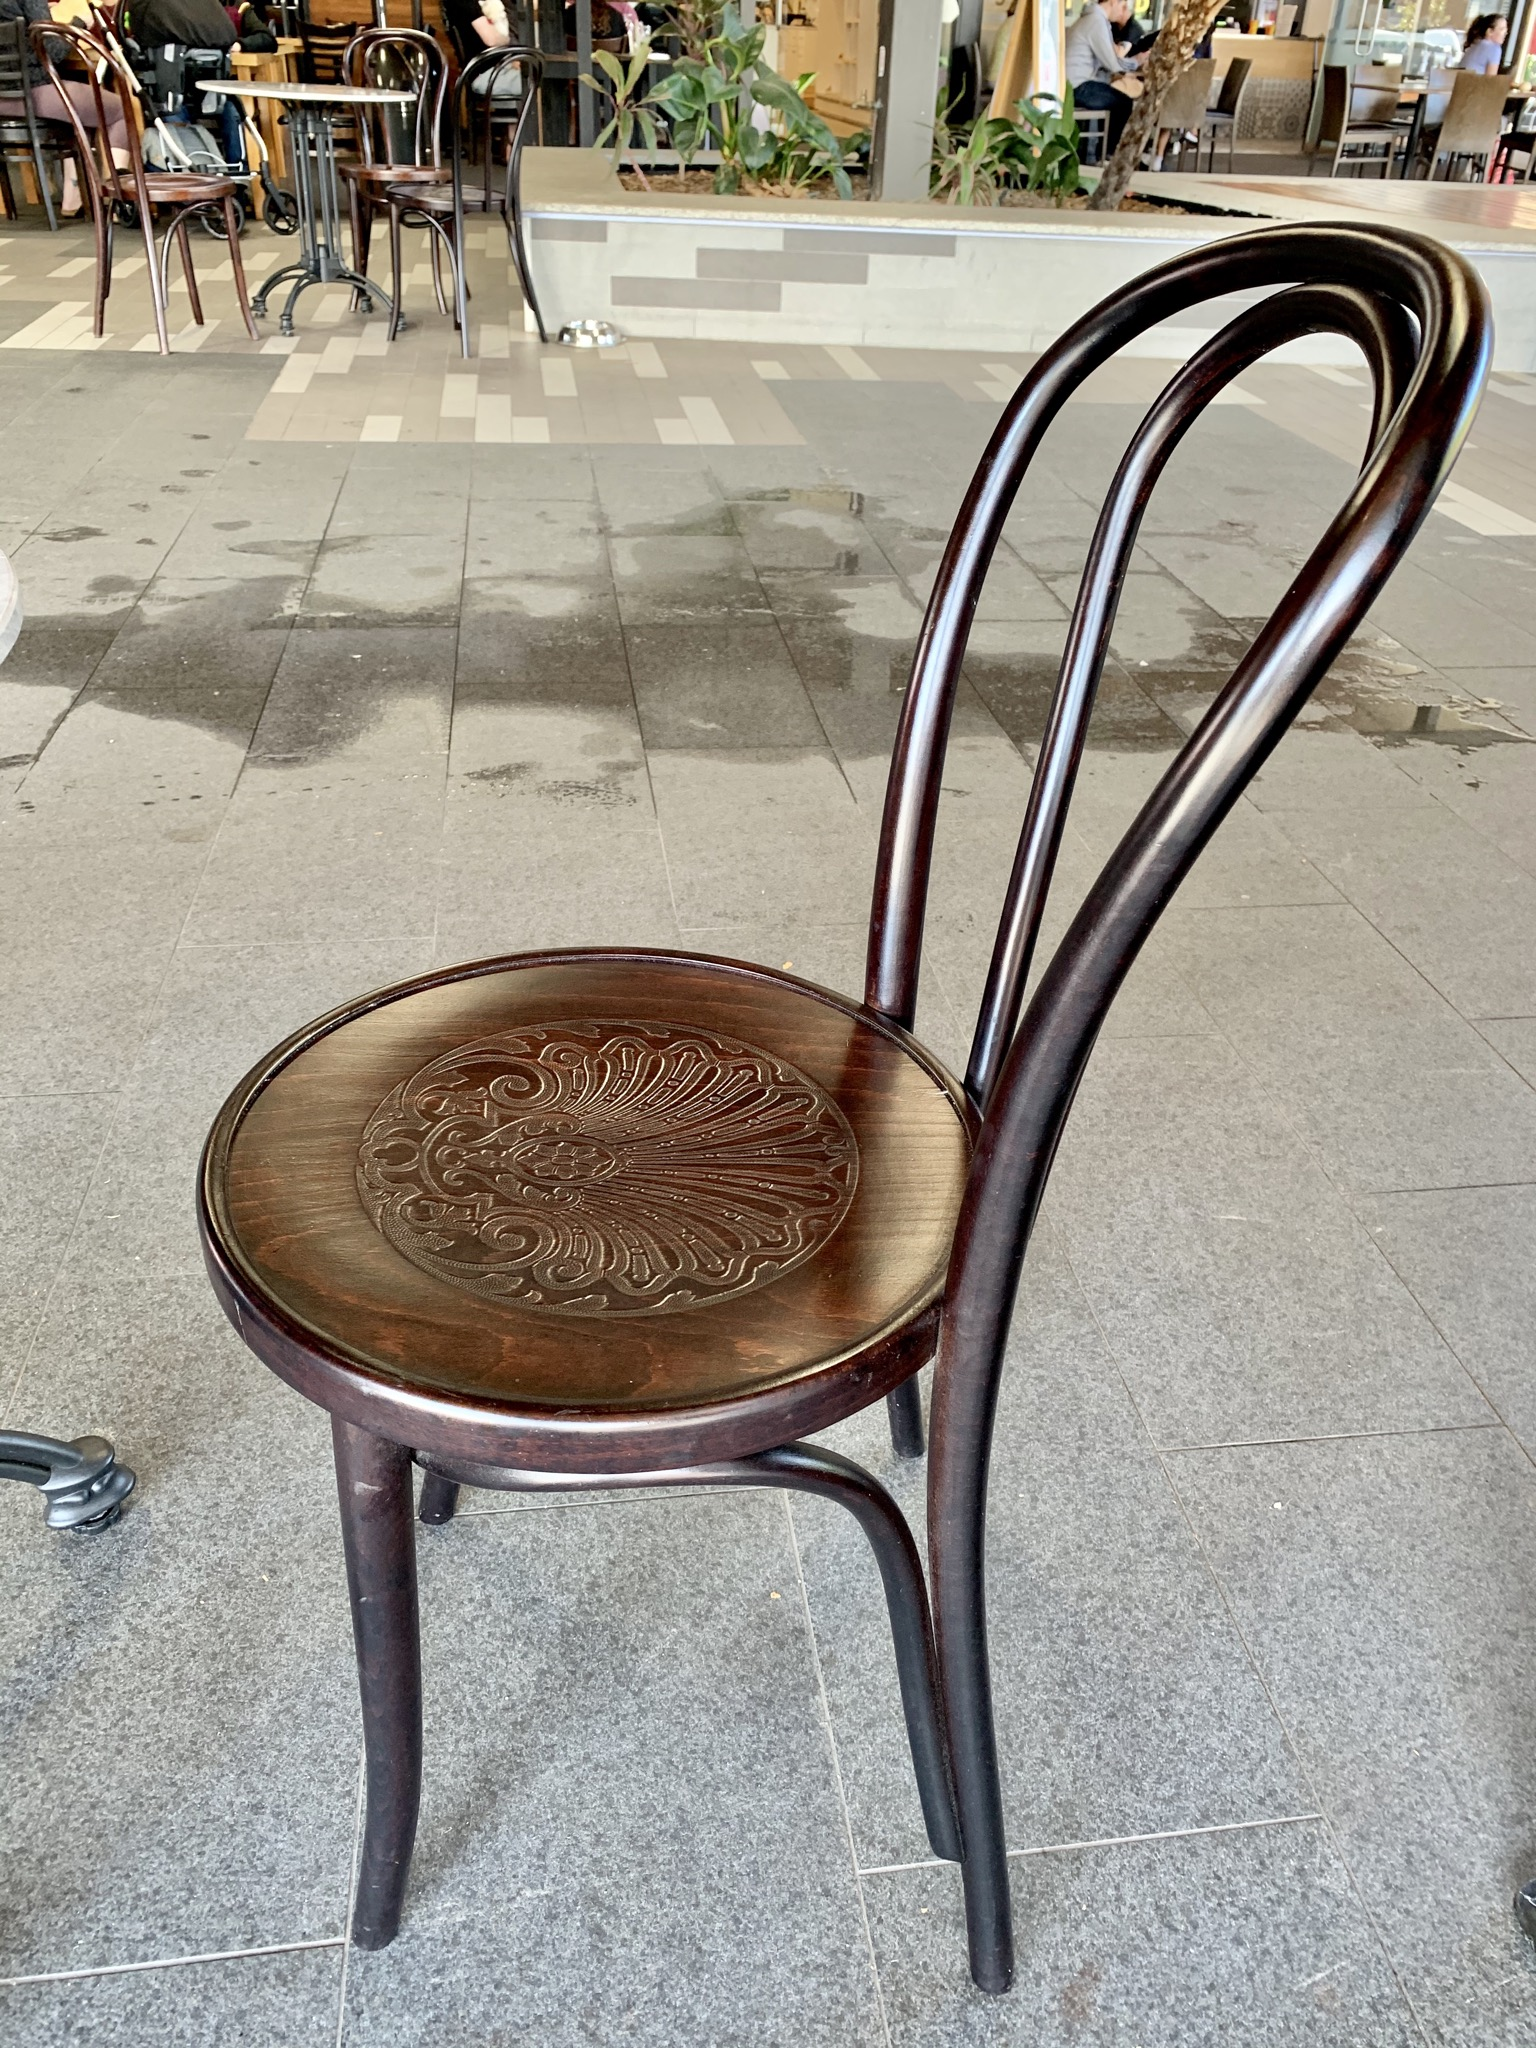 File:Fameg bentwood chairs of Poland 01.jpg